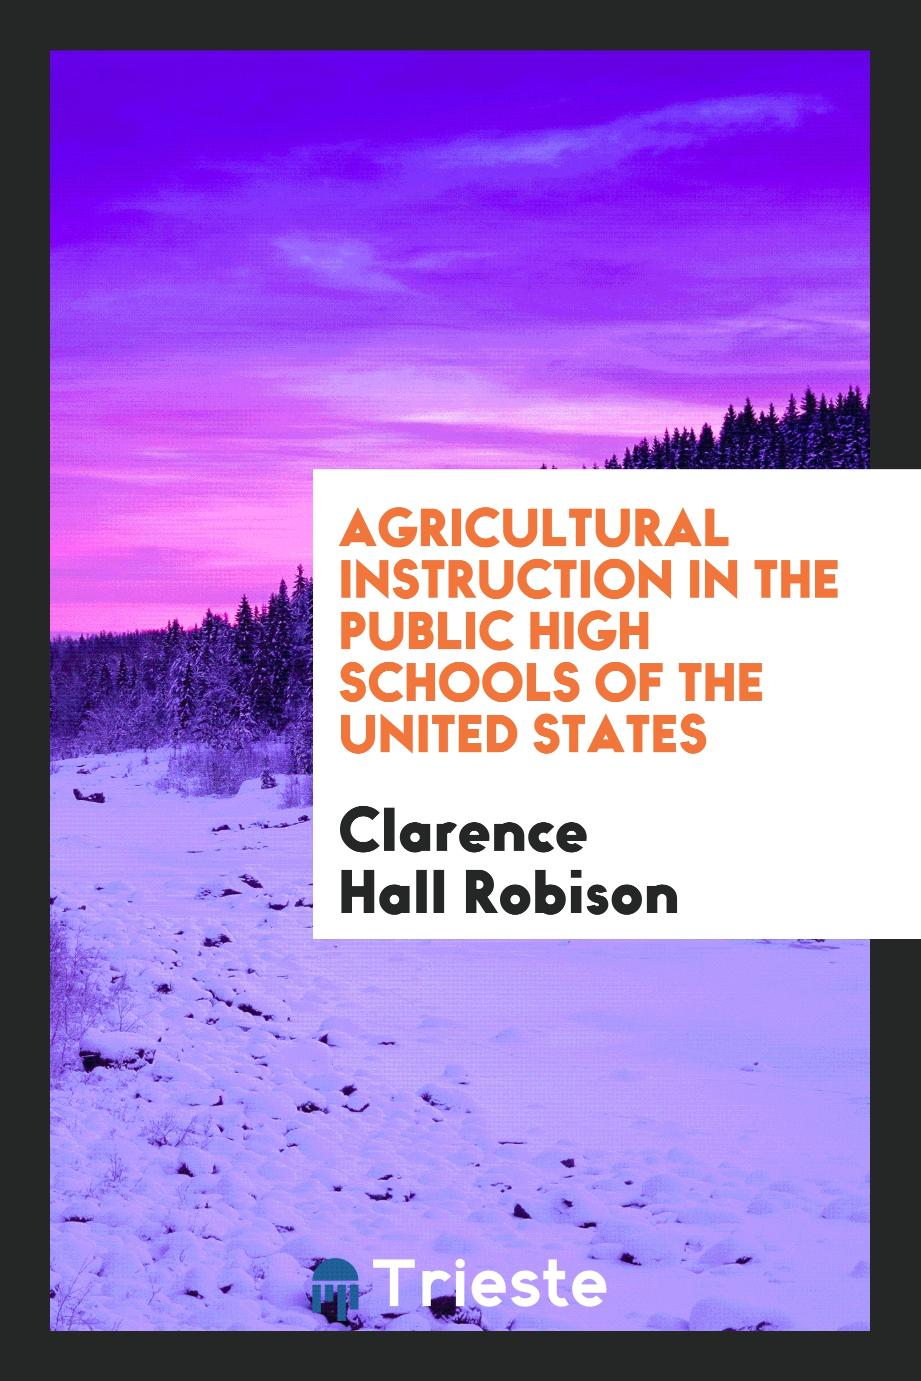 Agricultural Instruction in the Public High Schools of the United States